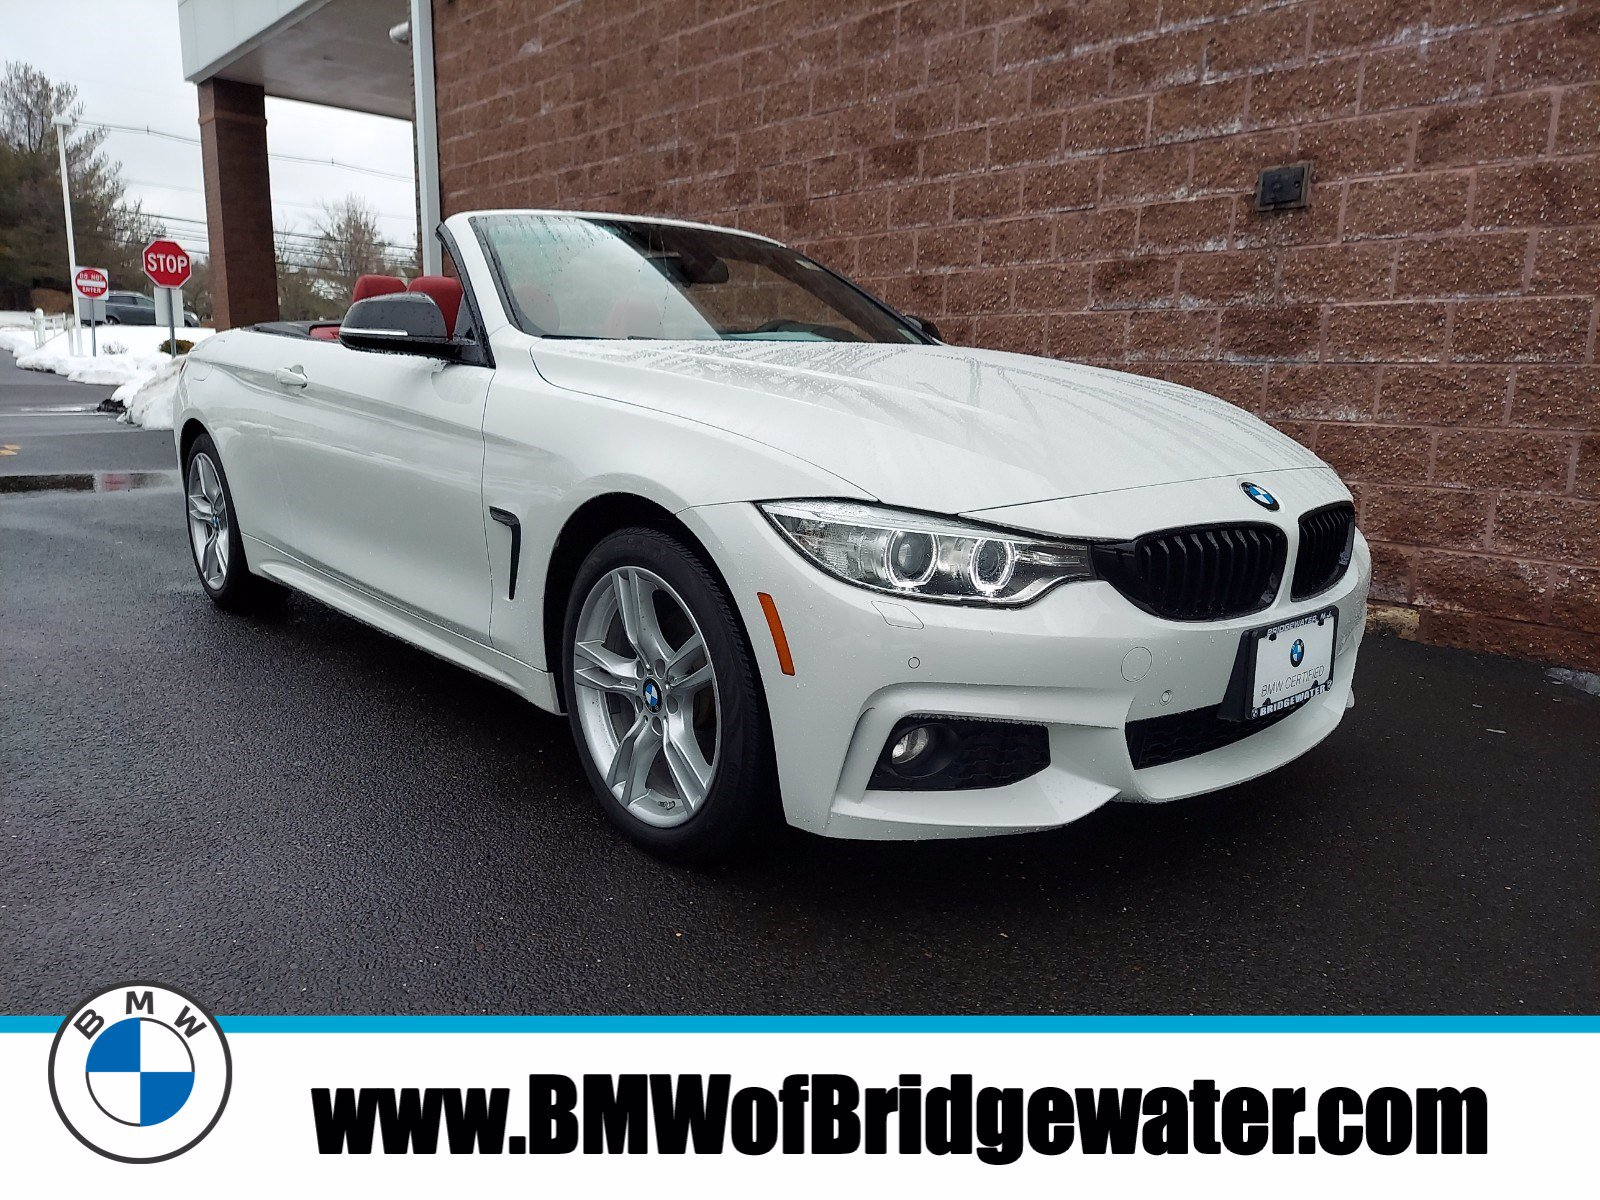 Used Bmw Convertibles For Sale In New Jersey Bmw Of Bridgewater